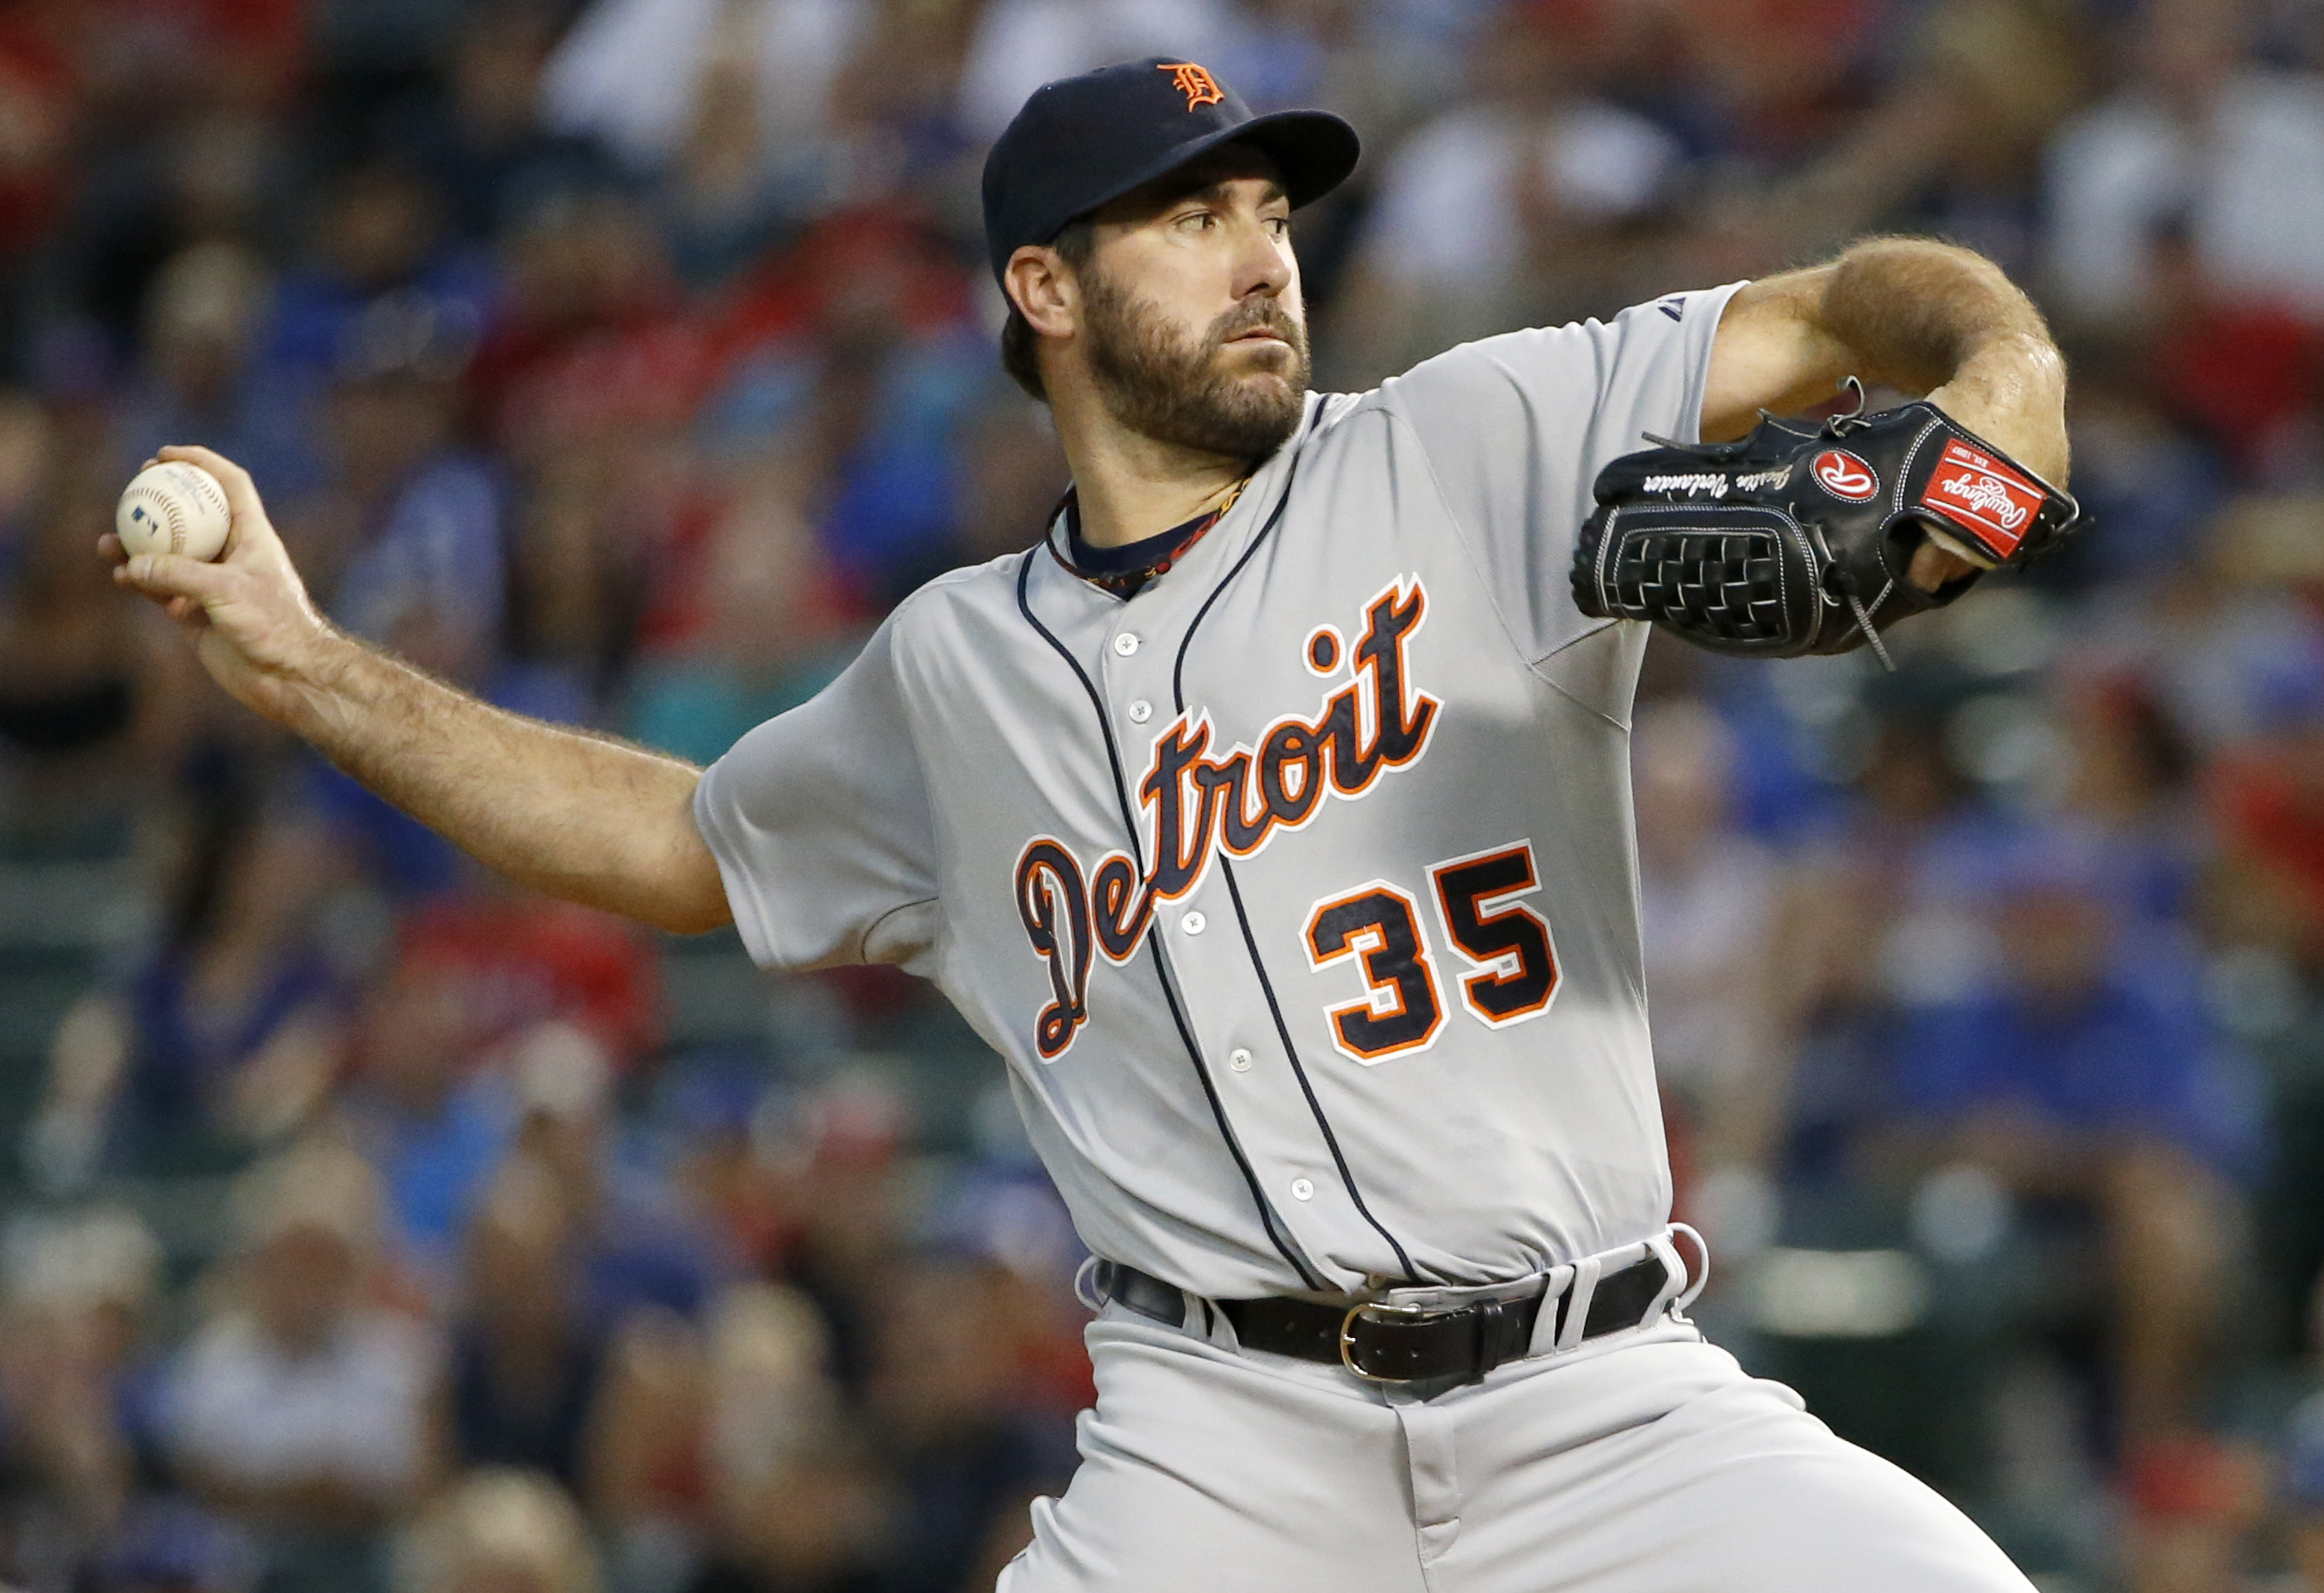 Detroit Tigers starting pitcher Justin Verlander (35) works against the Texas Rangers in the first inning of a baseball game Monday Sept. 28, 2015, in Arlington, Texas. (AP Photo/Ron Jenkins)